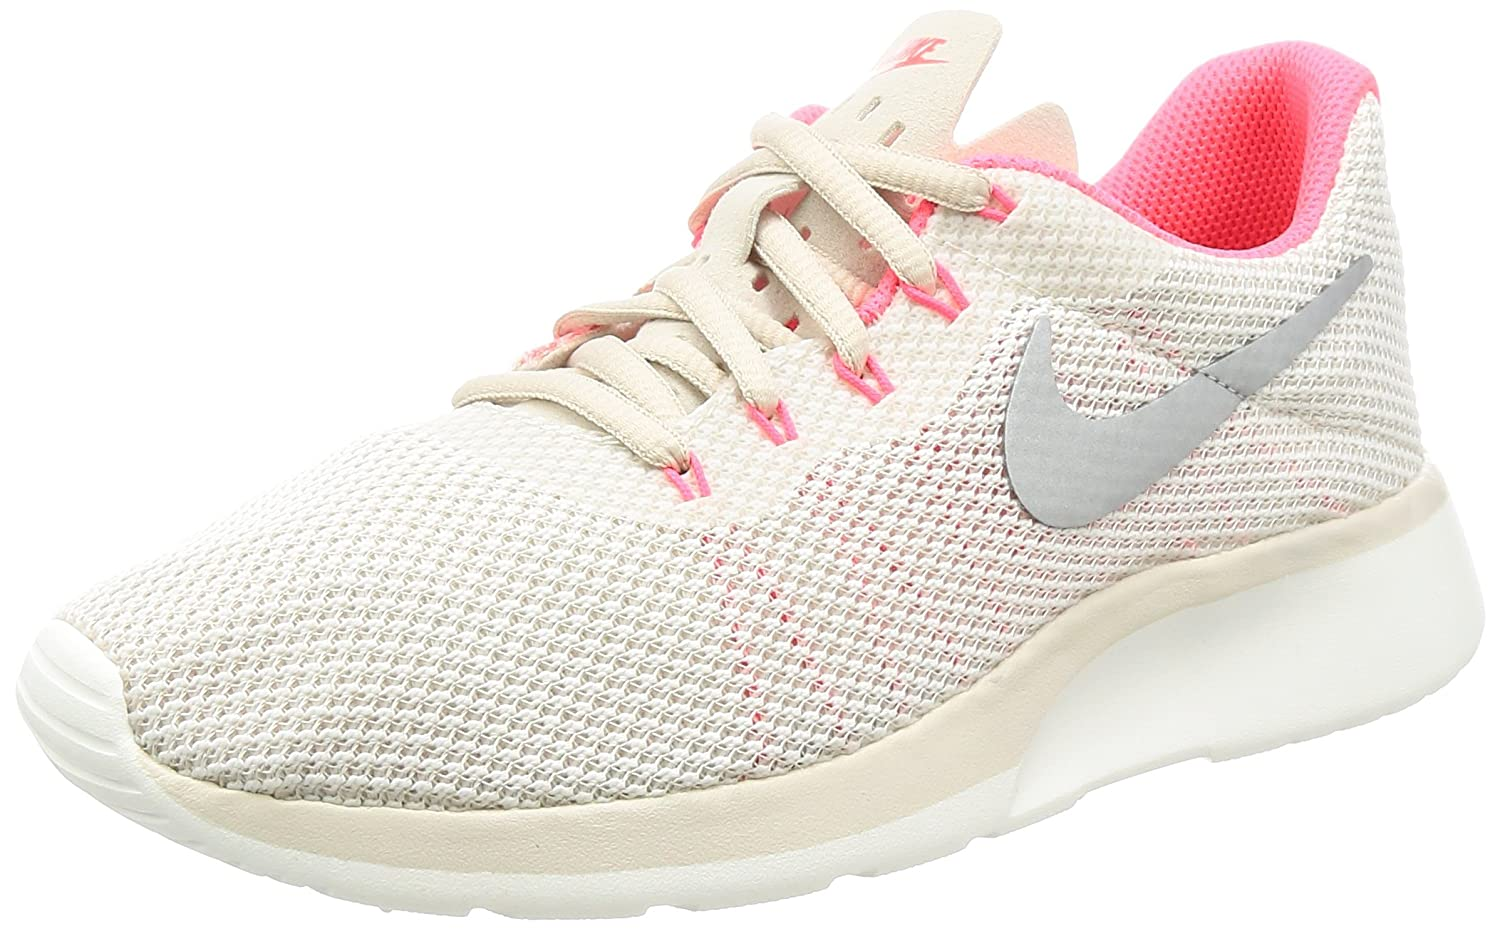 NIKE Women's Tanjun Running Shoes B006BC9DPY 8.5 B(M) US|Lt Orewood Brn/Chrome/Sail/Solar Red